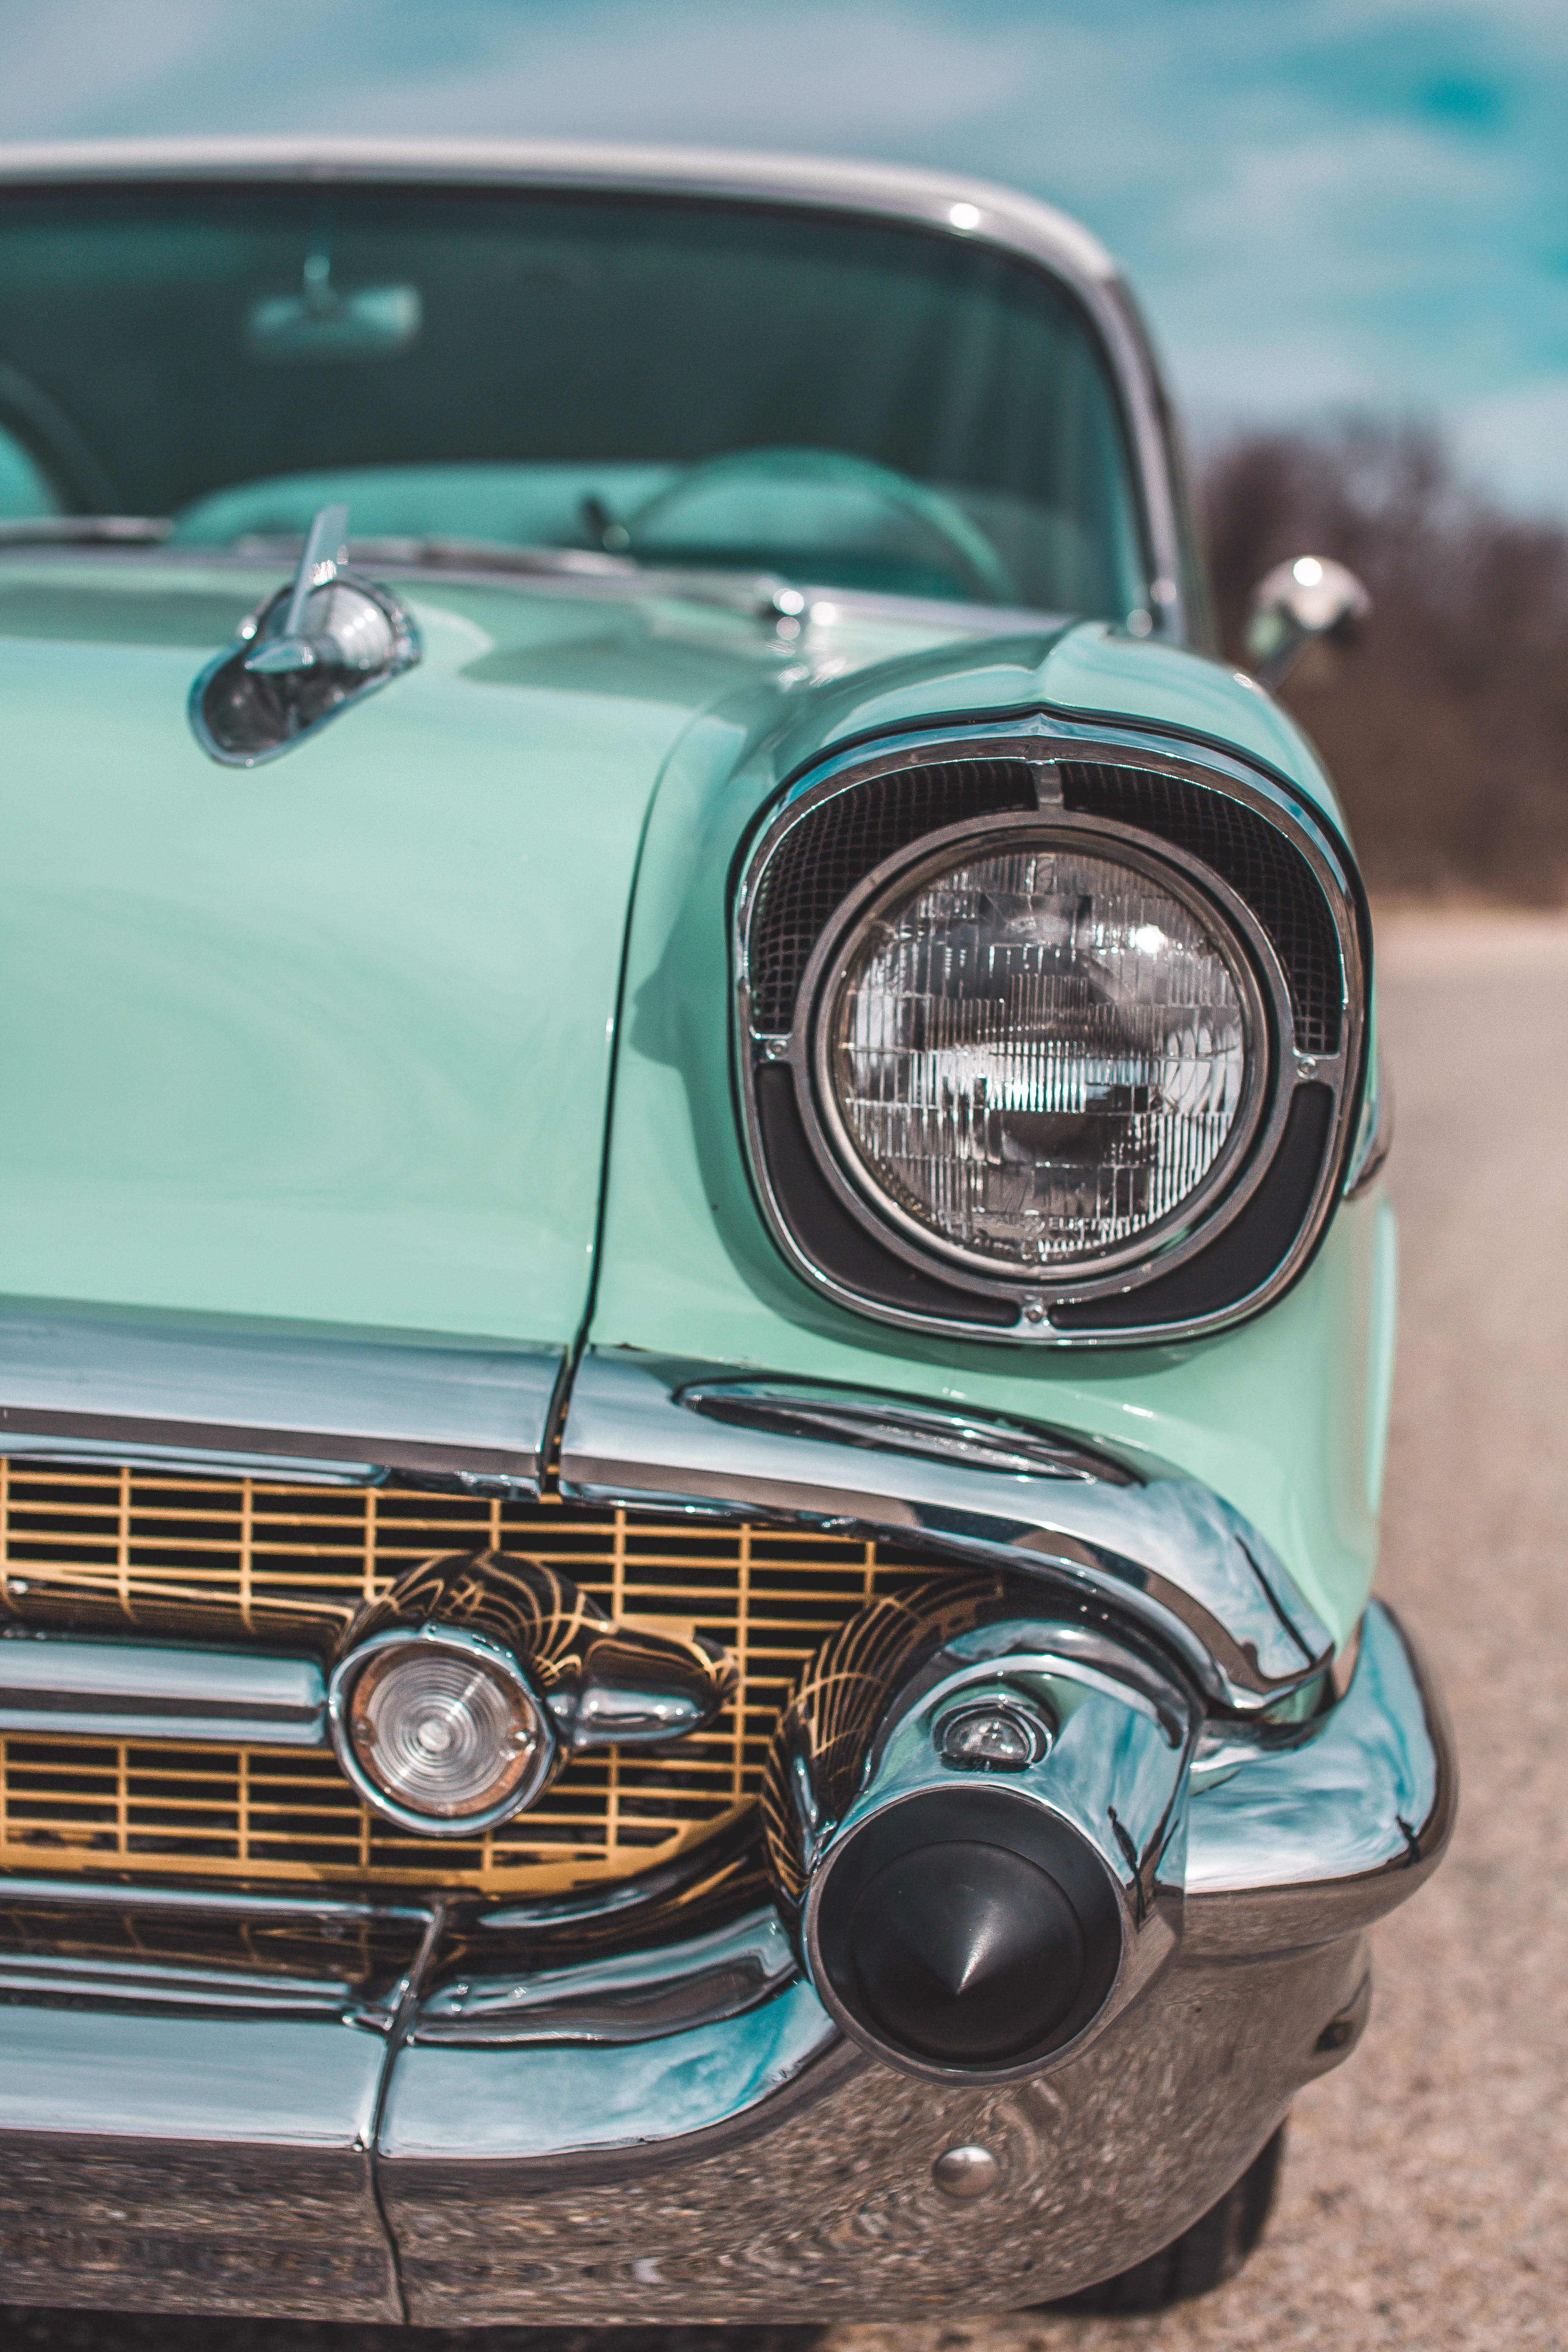 close-up photography of classic teal car